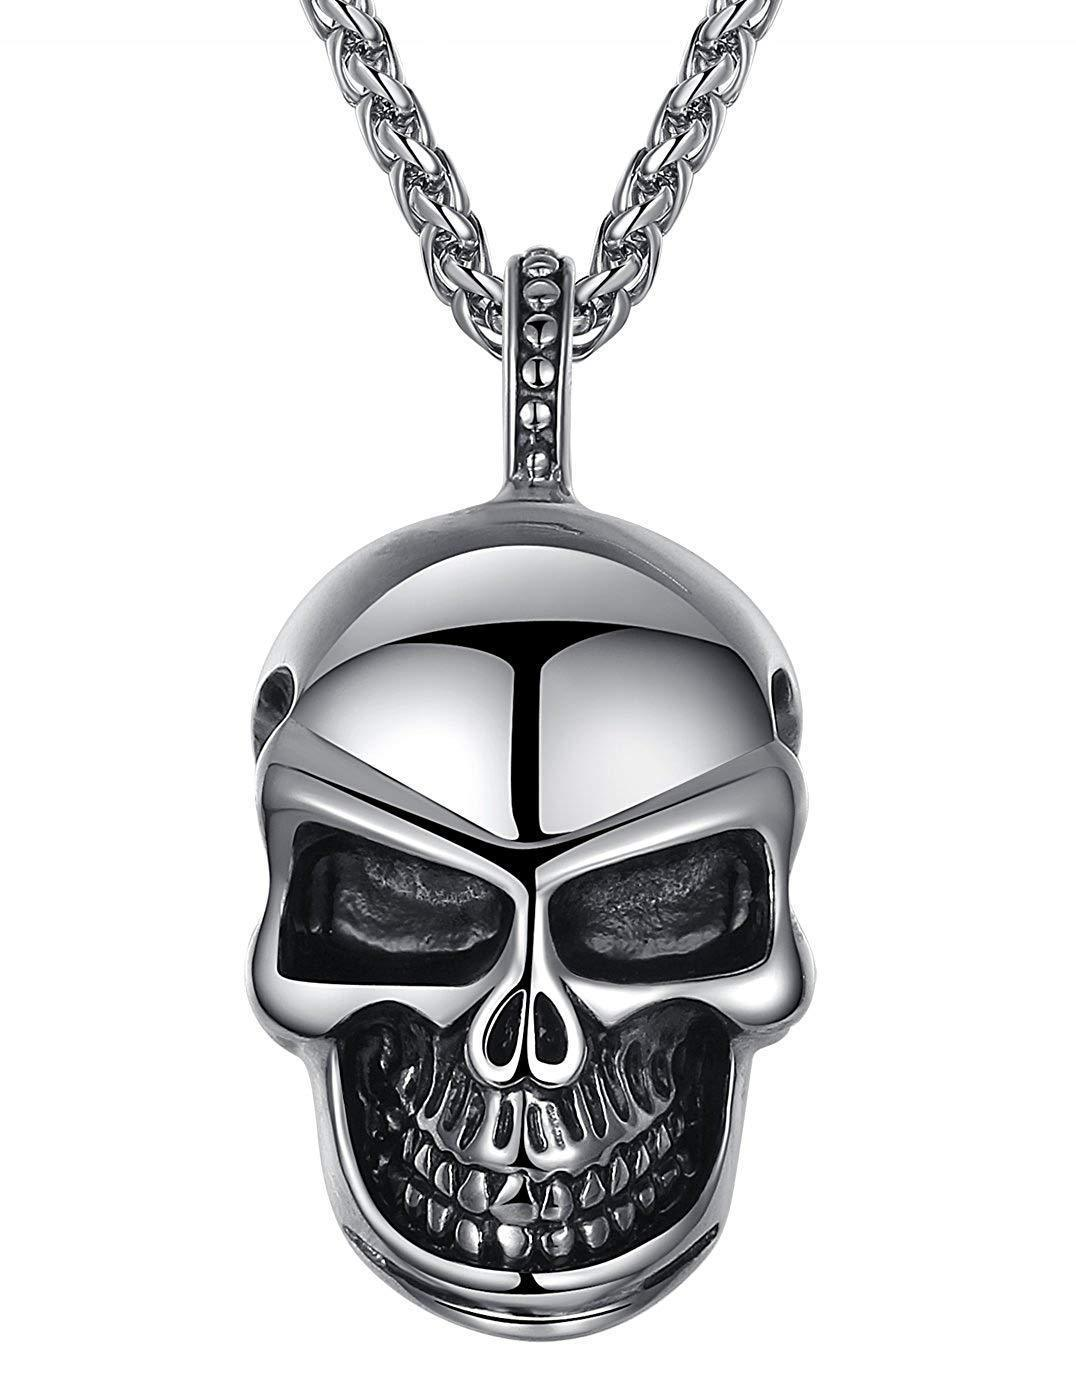 Aoiy Men's Stainless Steel Gothic Skull Biker Pendant Necklace 24 Link Chain @ Sons of Odin™ -